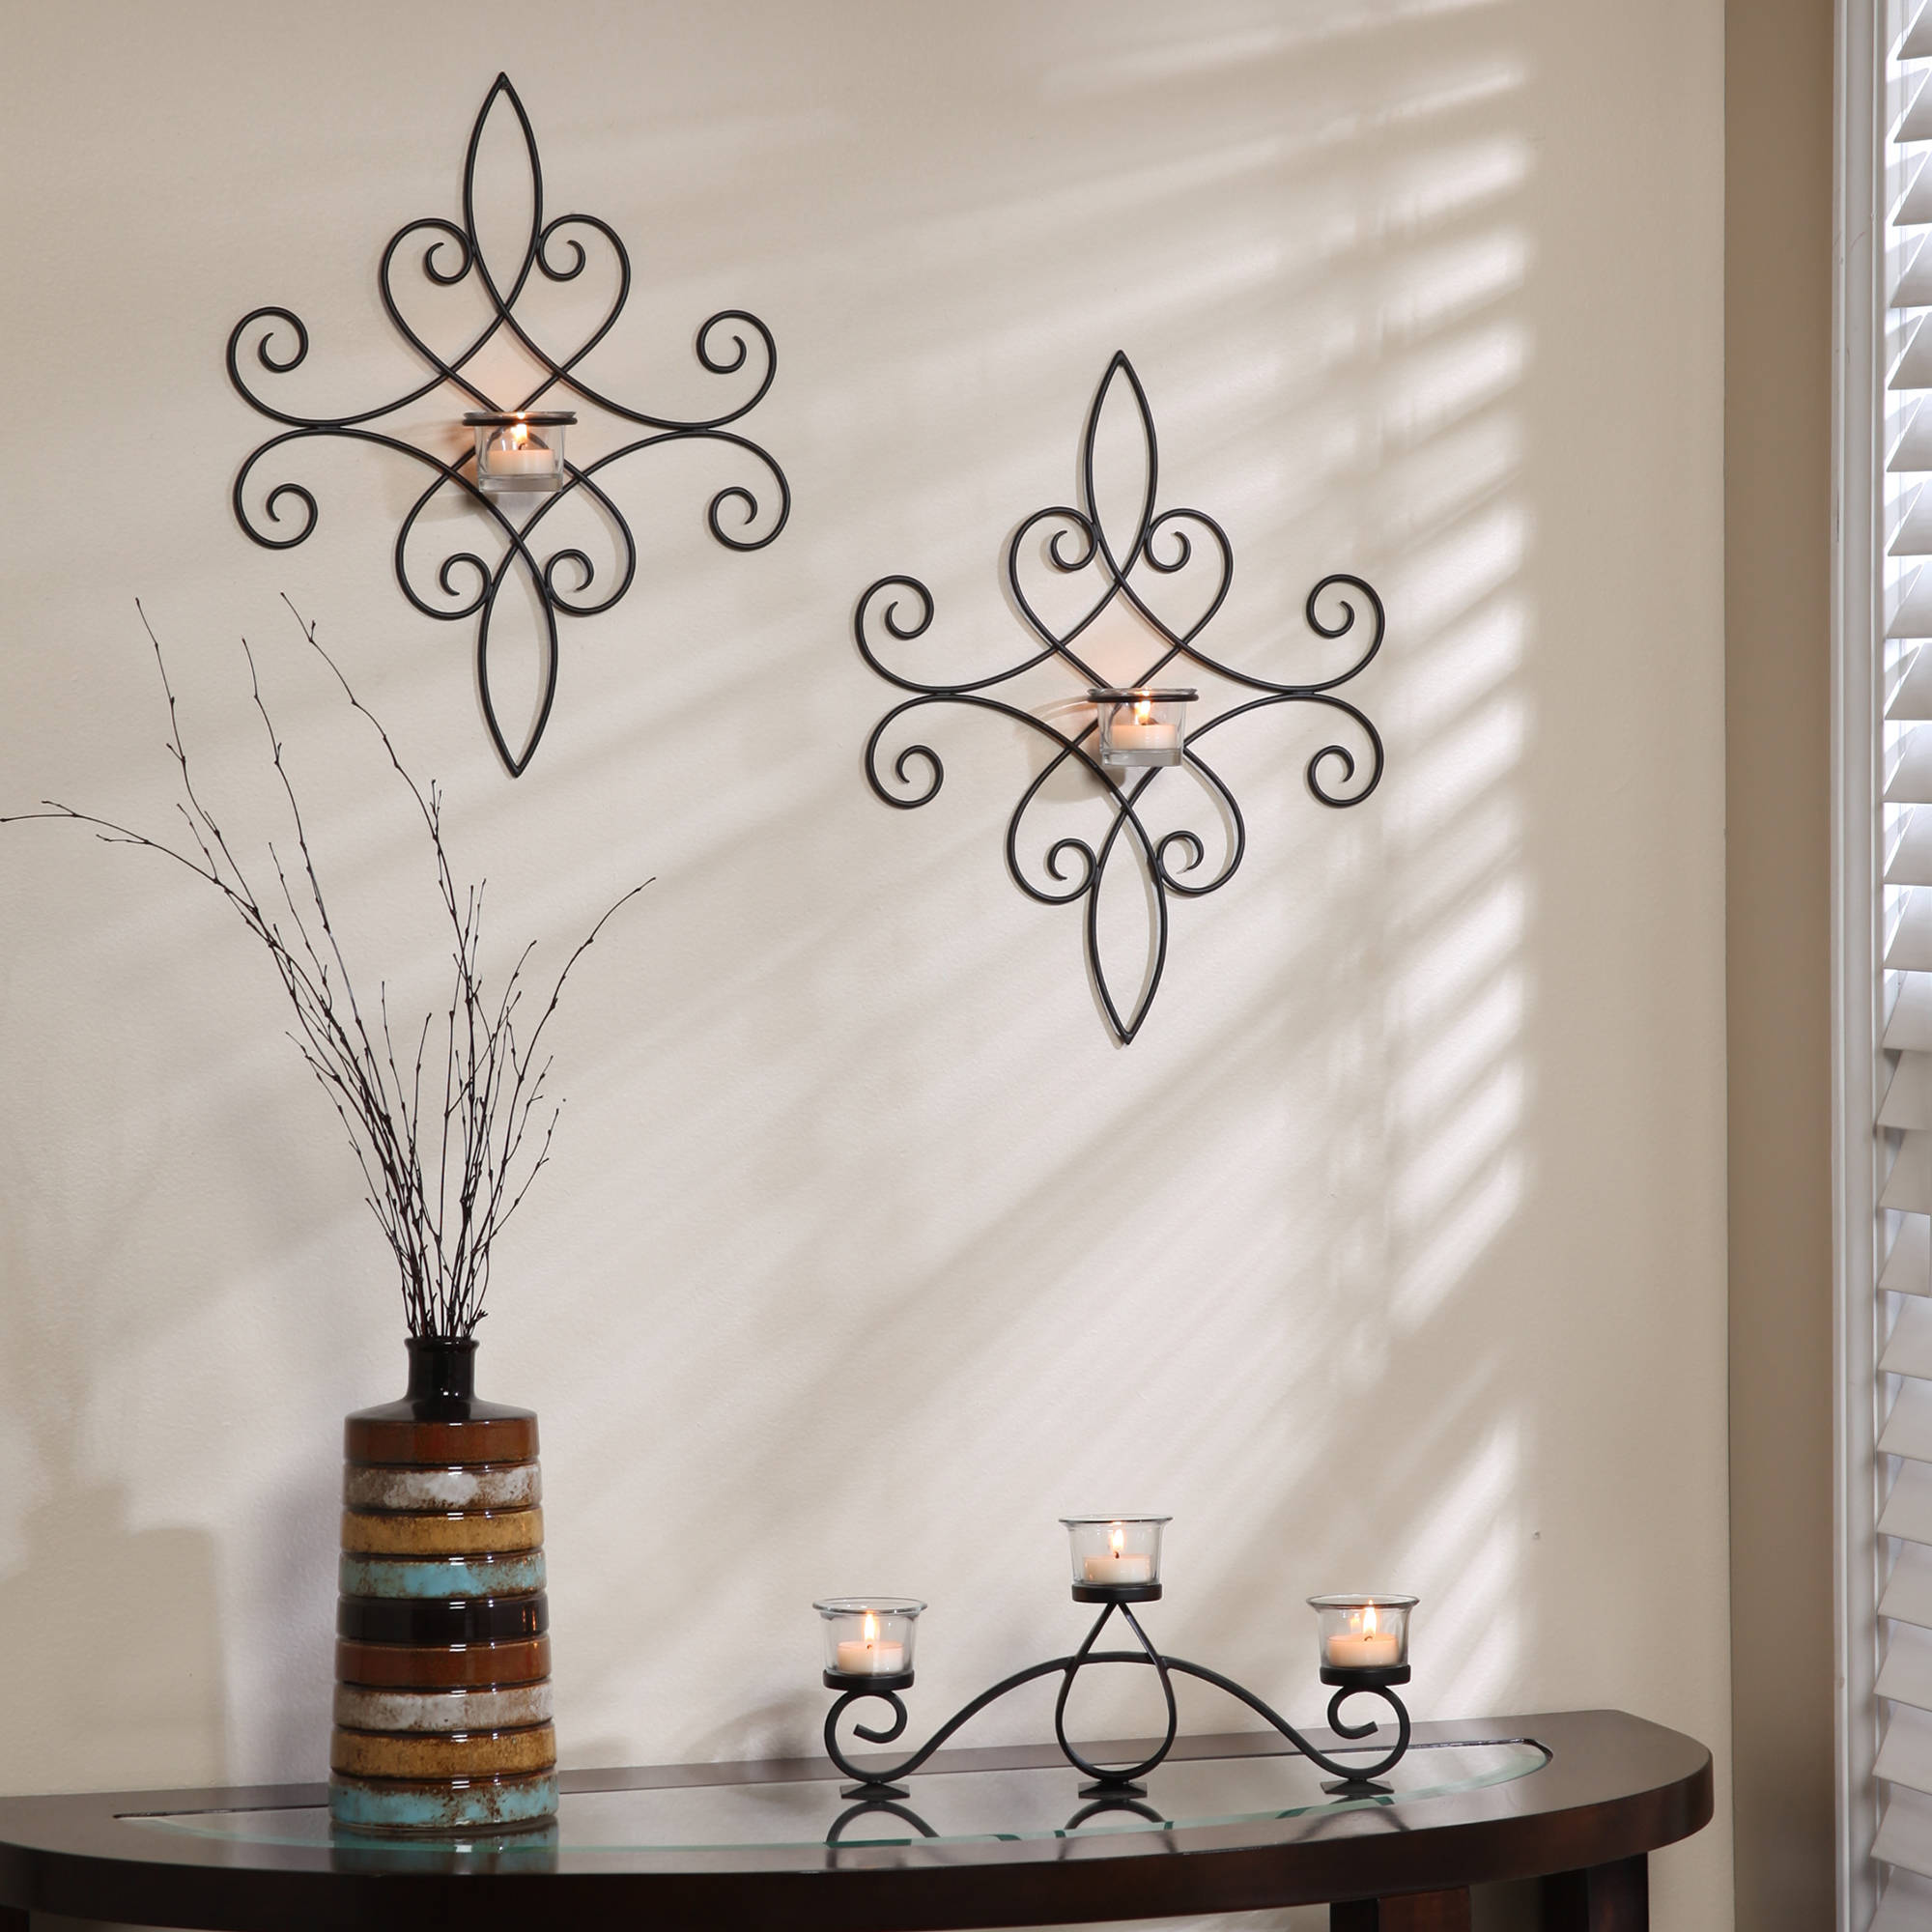 Click here to buy Better Homes and Gardens Iron Scroll Wall Sconce Tealight Holder, Set of 2.